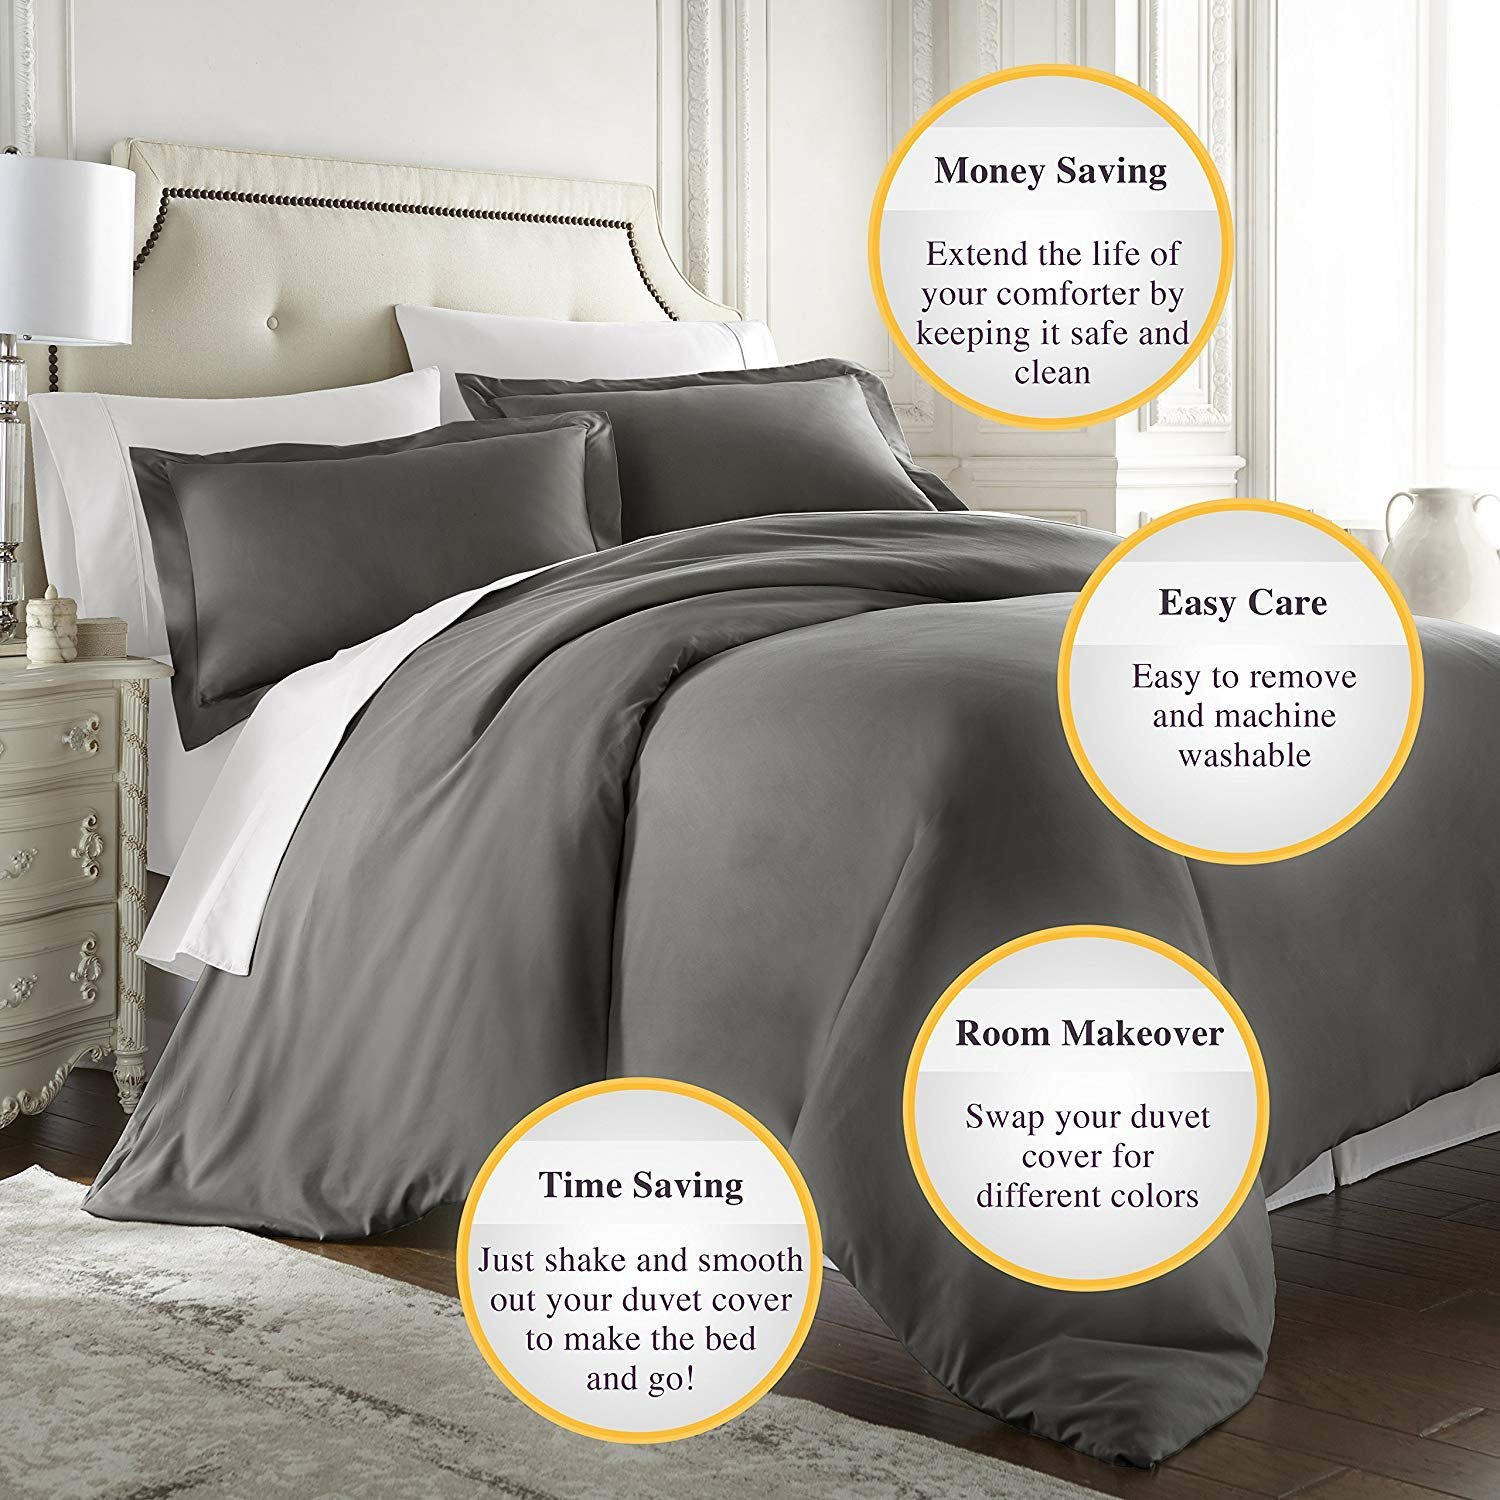 Bed-Bucket 100% Natural Cotton 800 Thread Count Hypoallergenic Design Wrinkle & Fade Resistant 98X120 Inch Over size Super King Dark Gray Solid Duvet Cover With Zipper Closer by Bed-Bucket (Image #1)